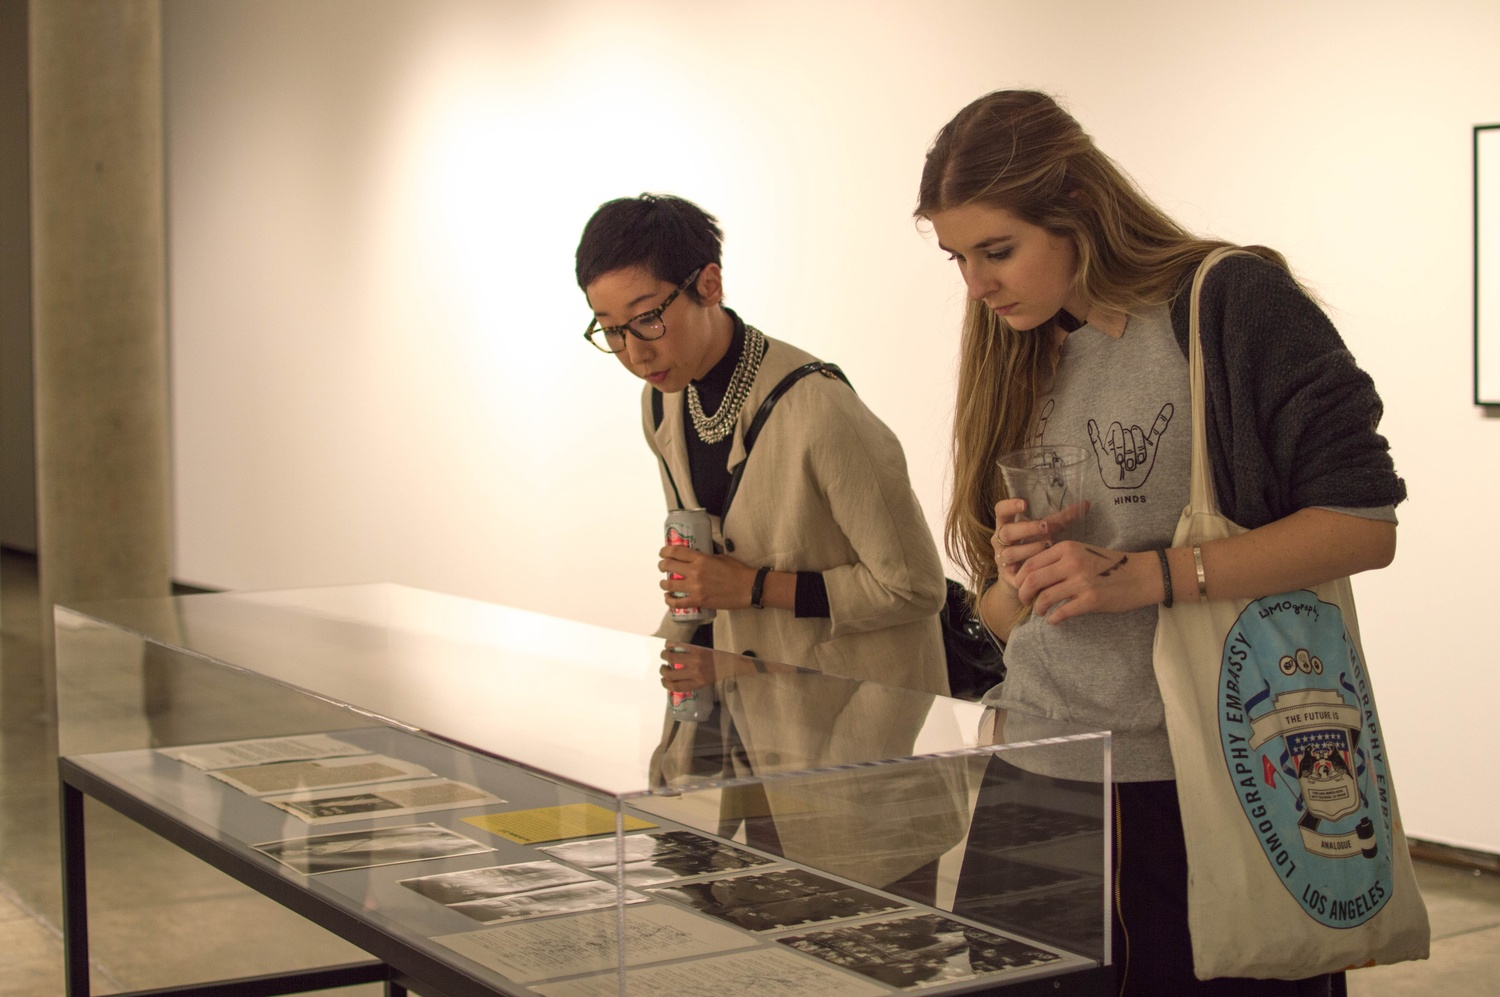 """""""It feels like you're going to two shows,"""" said Harvard Art Museums Curatorial Assistant Jessica S. Hong about the simultaneous opening of two new exhibits on Thursday evening. Hong, left, and Madi L. Stine '17 examine art during a new show in the third floor of the Carpenter Center."""